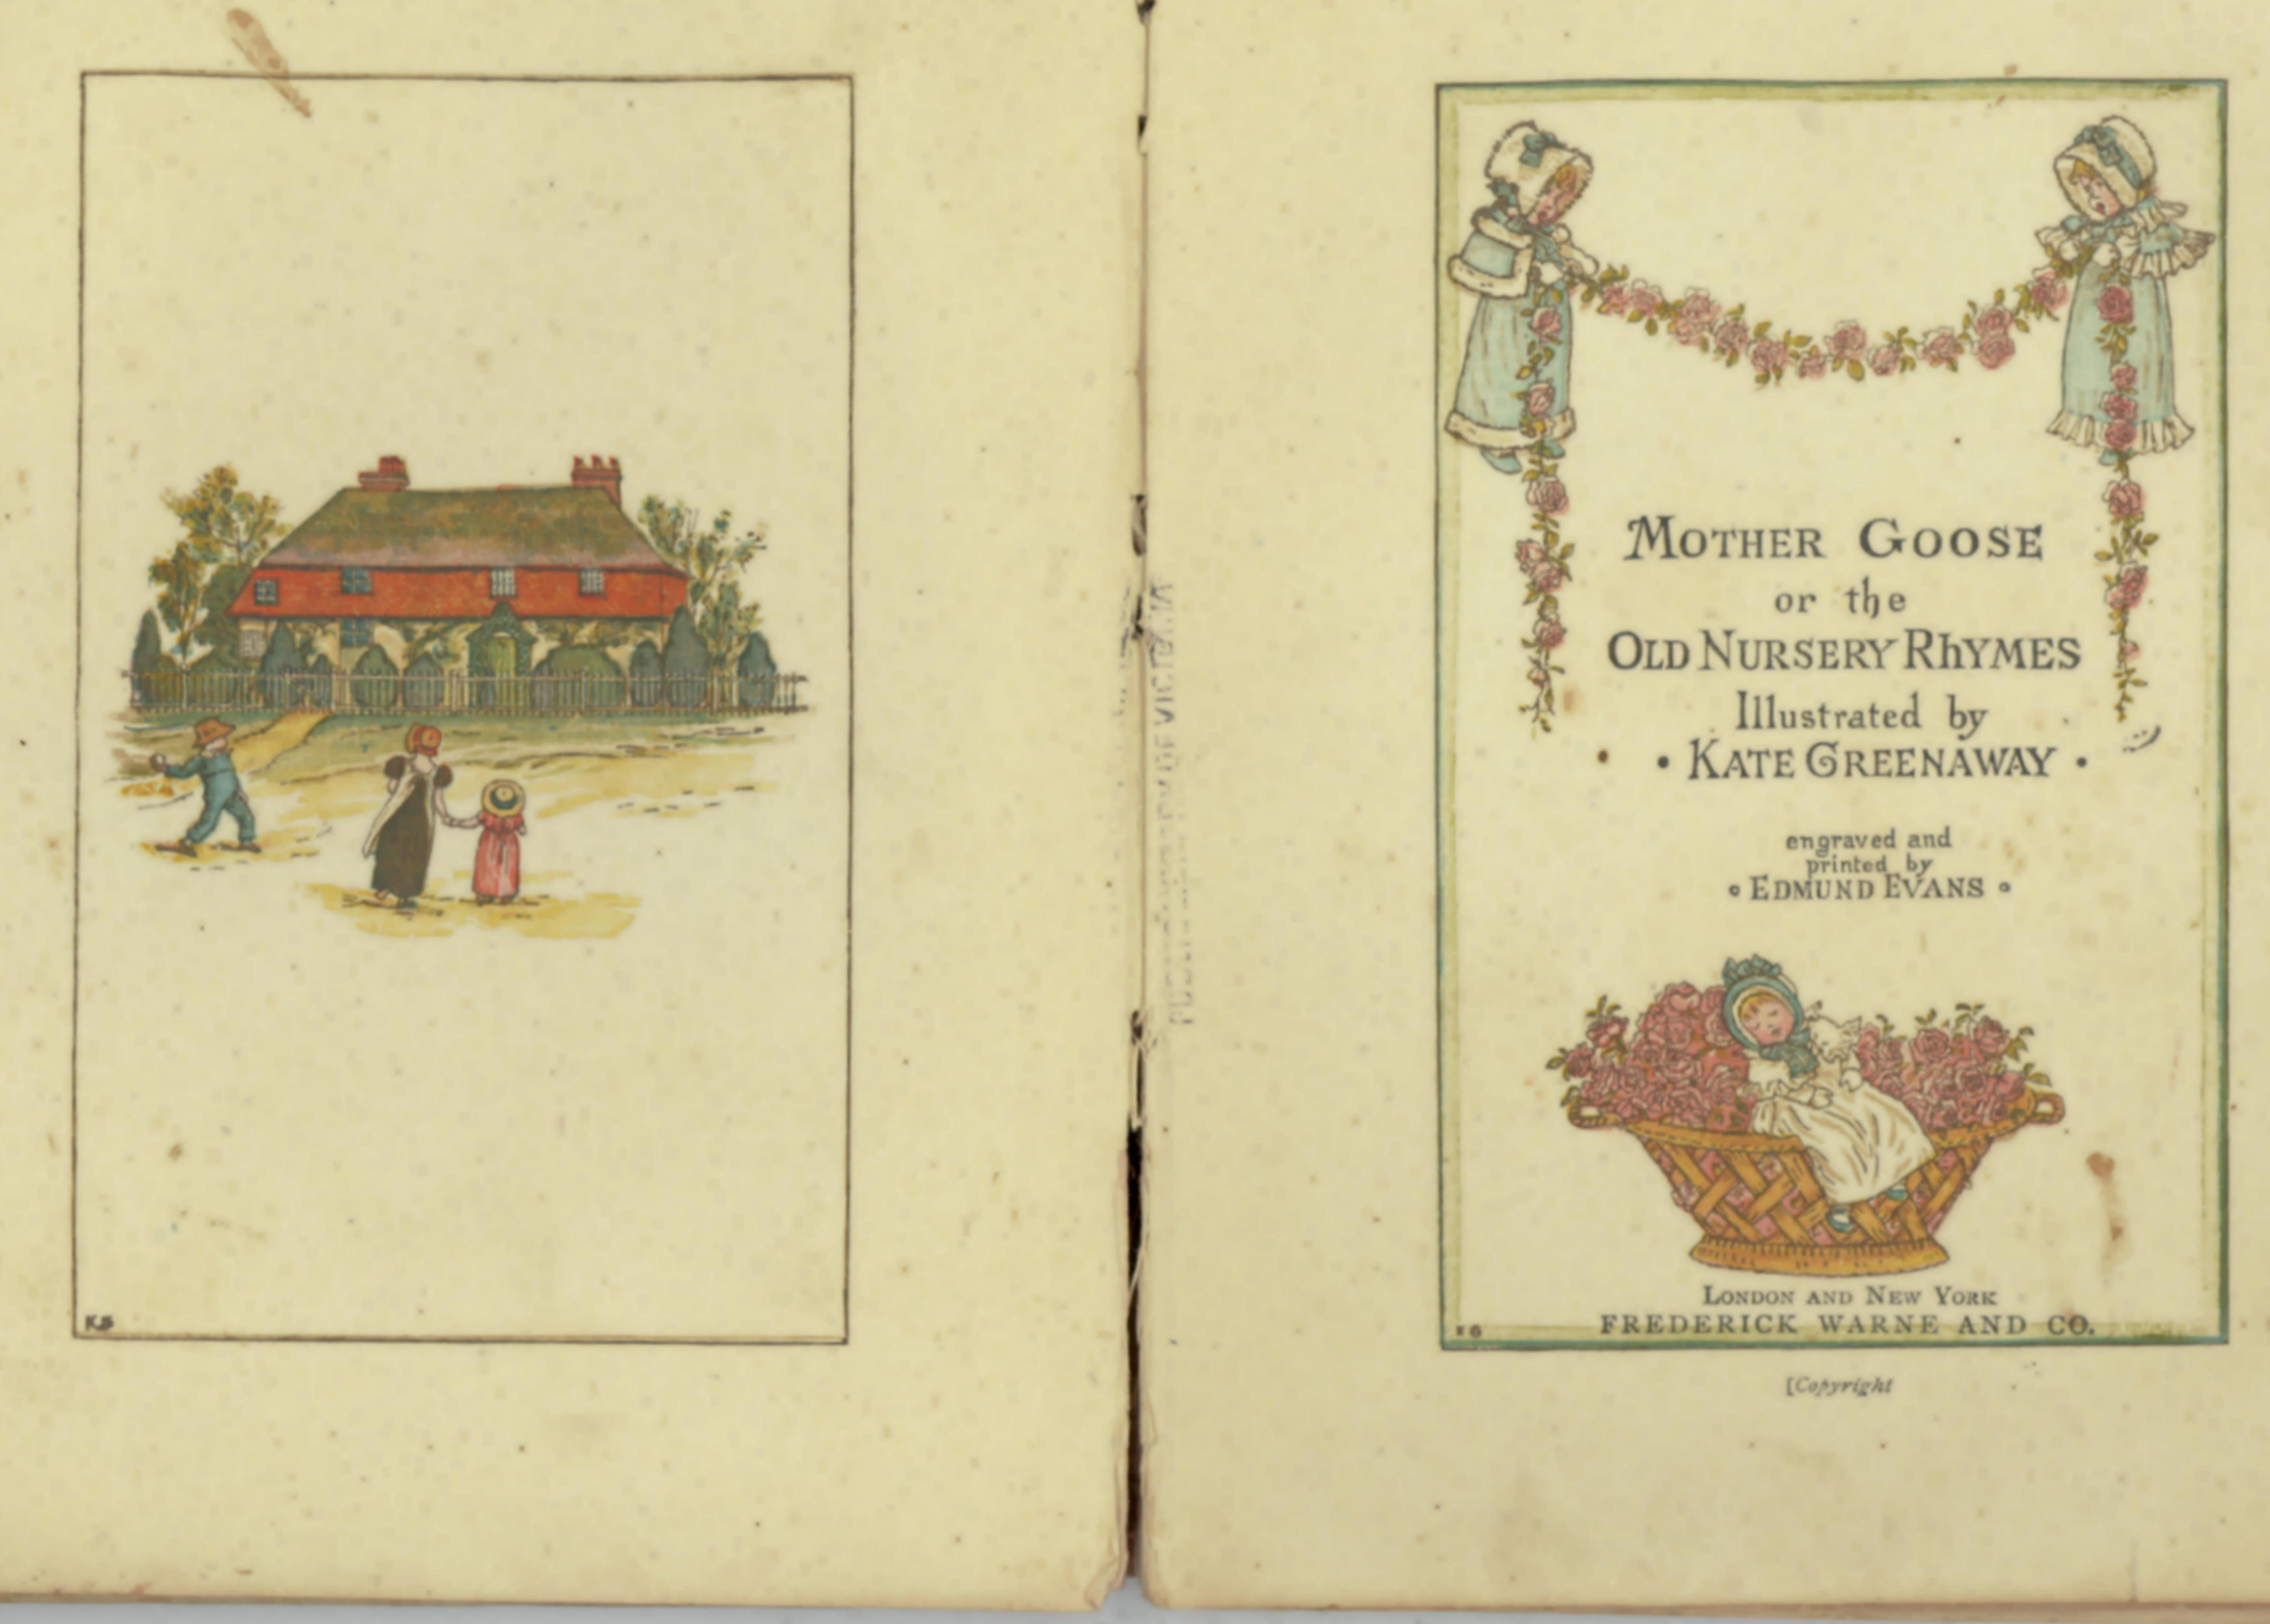 Title page of Mother Goose by Kate Greenaway